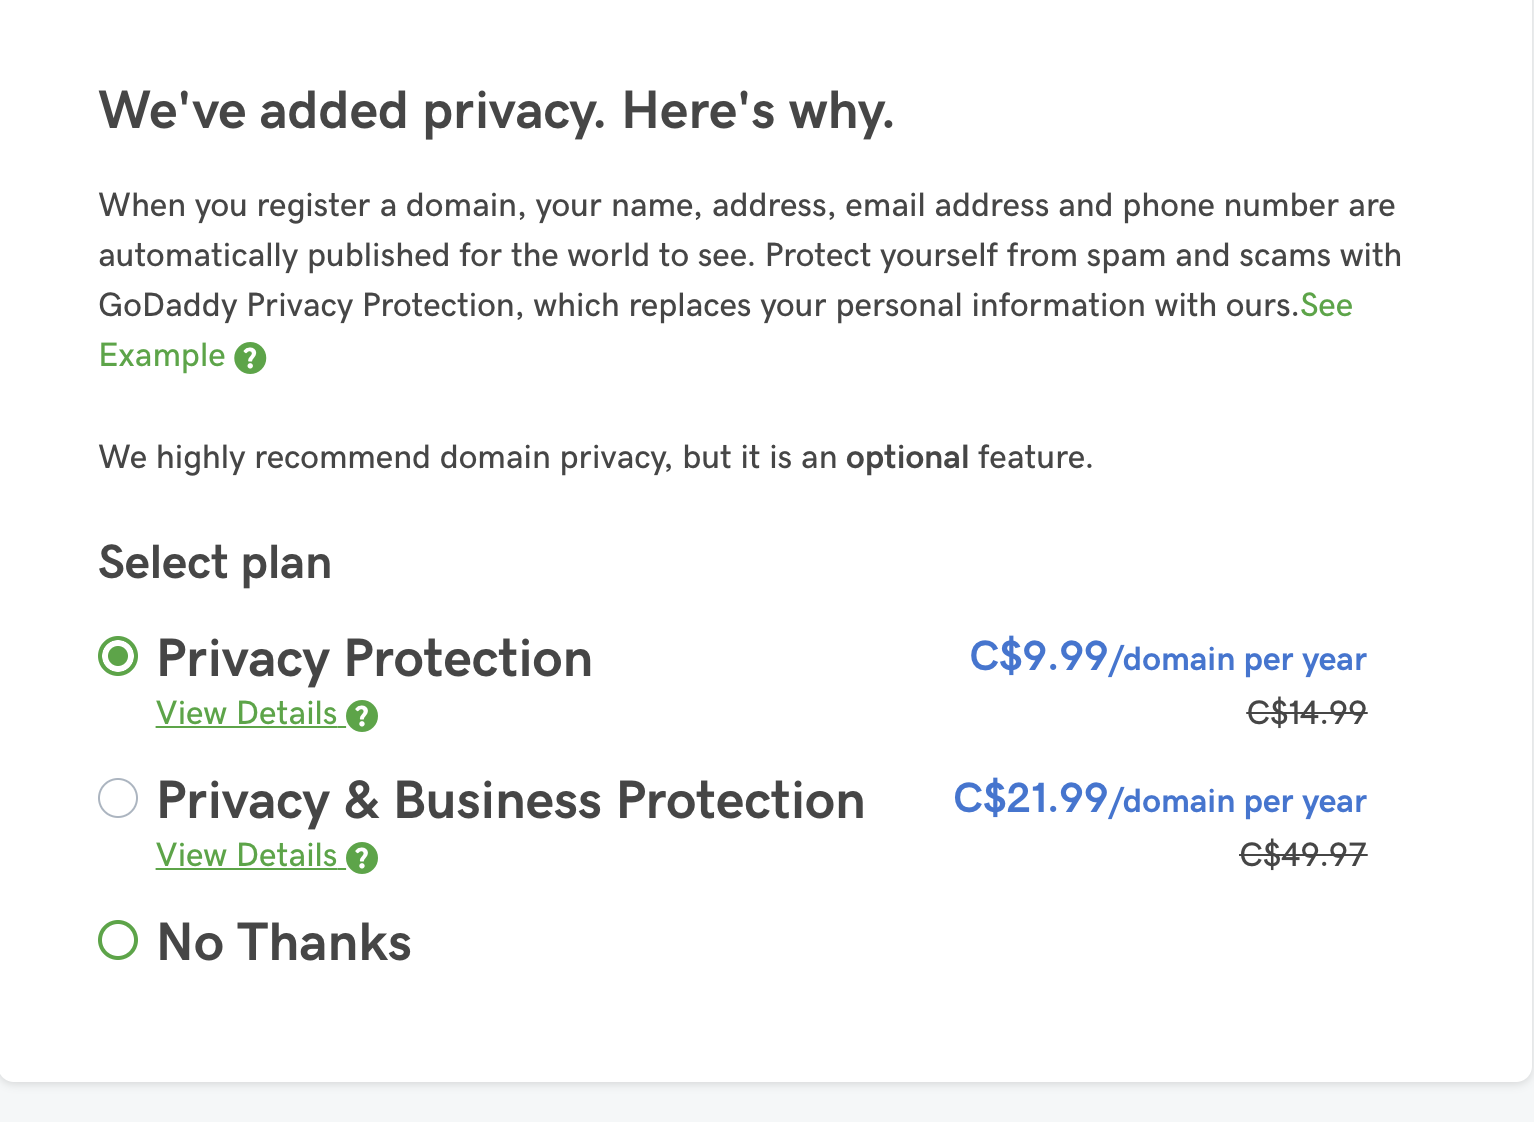 godaddy privacy policy